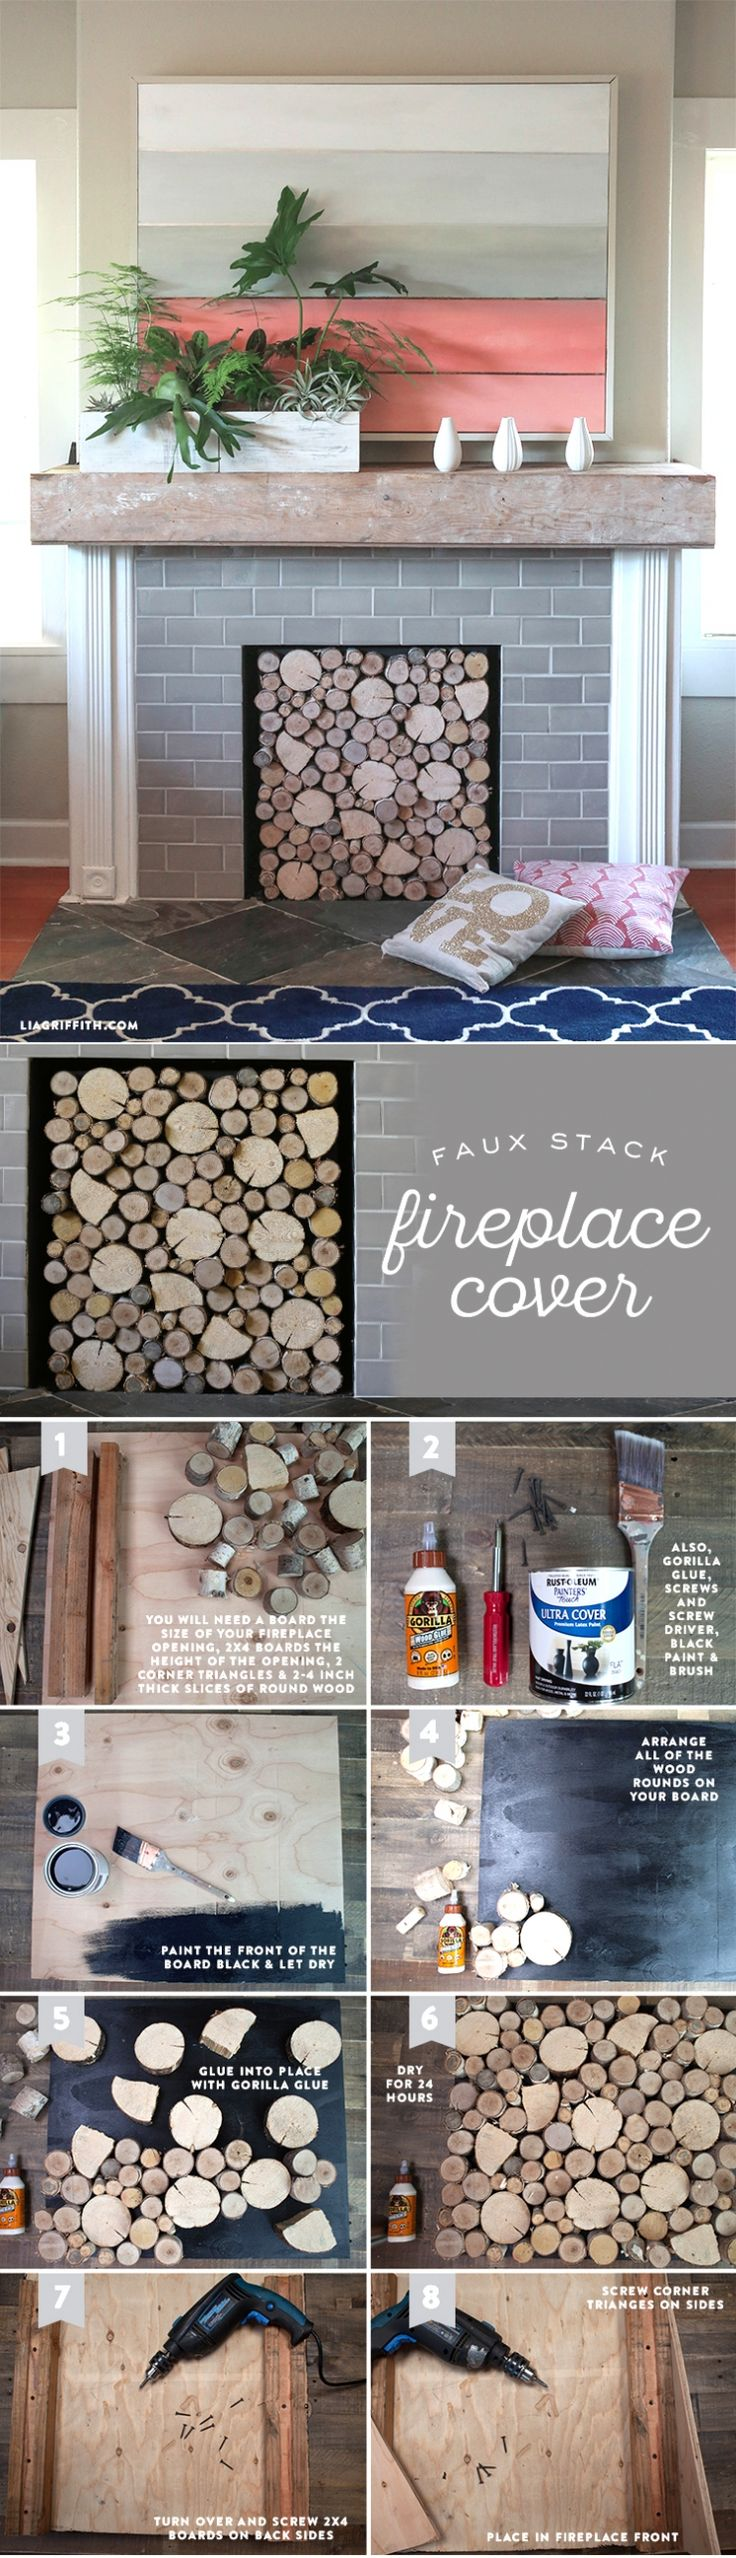 best 25 fireplace cover ideas on pinterest fake fireplace logs